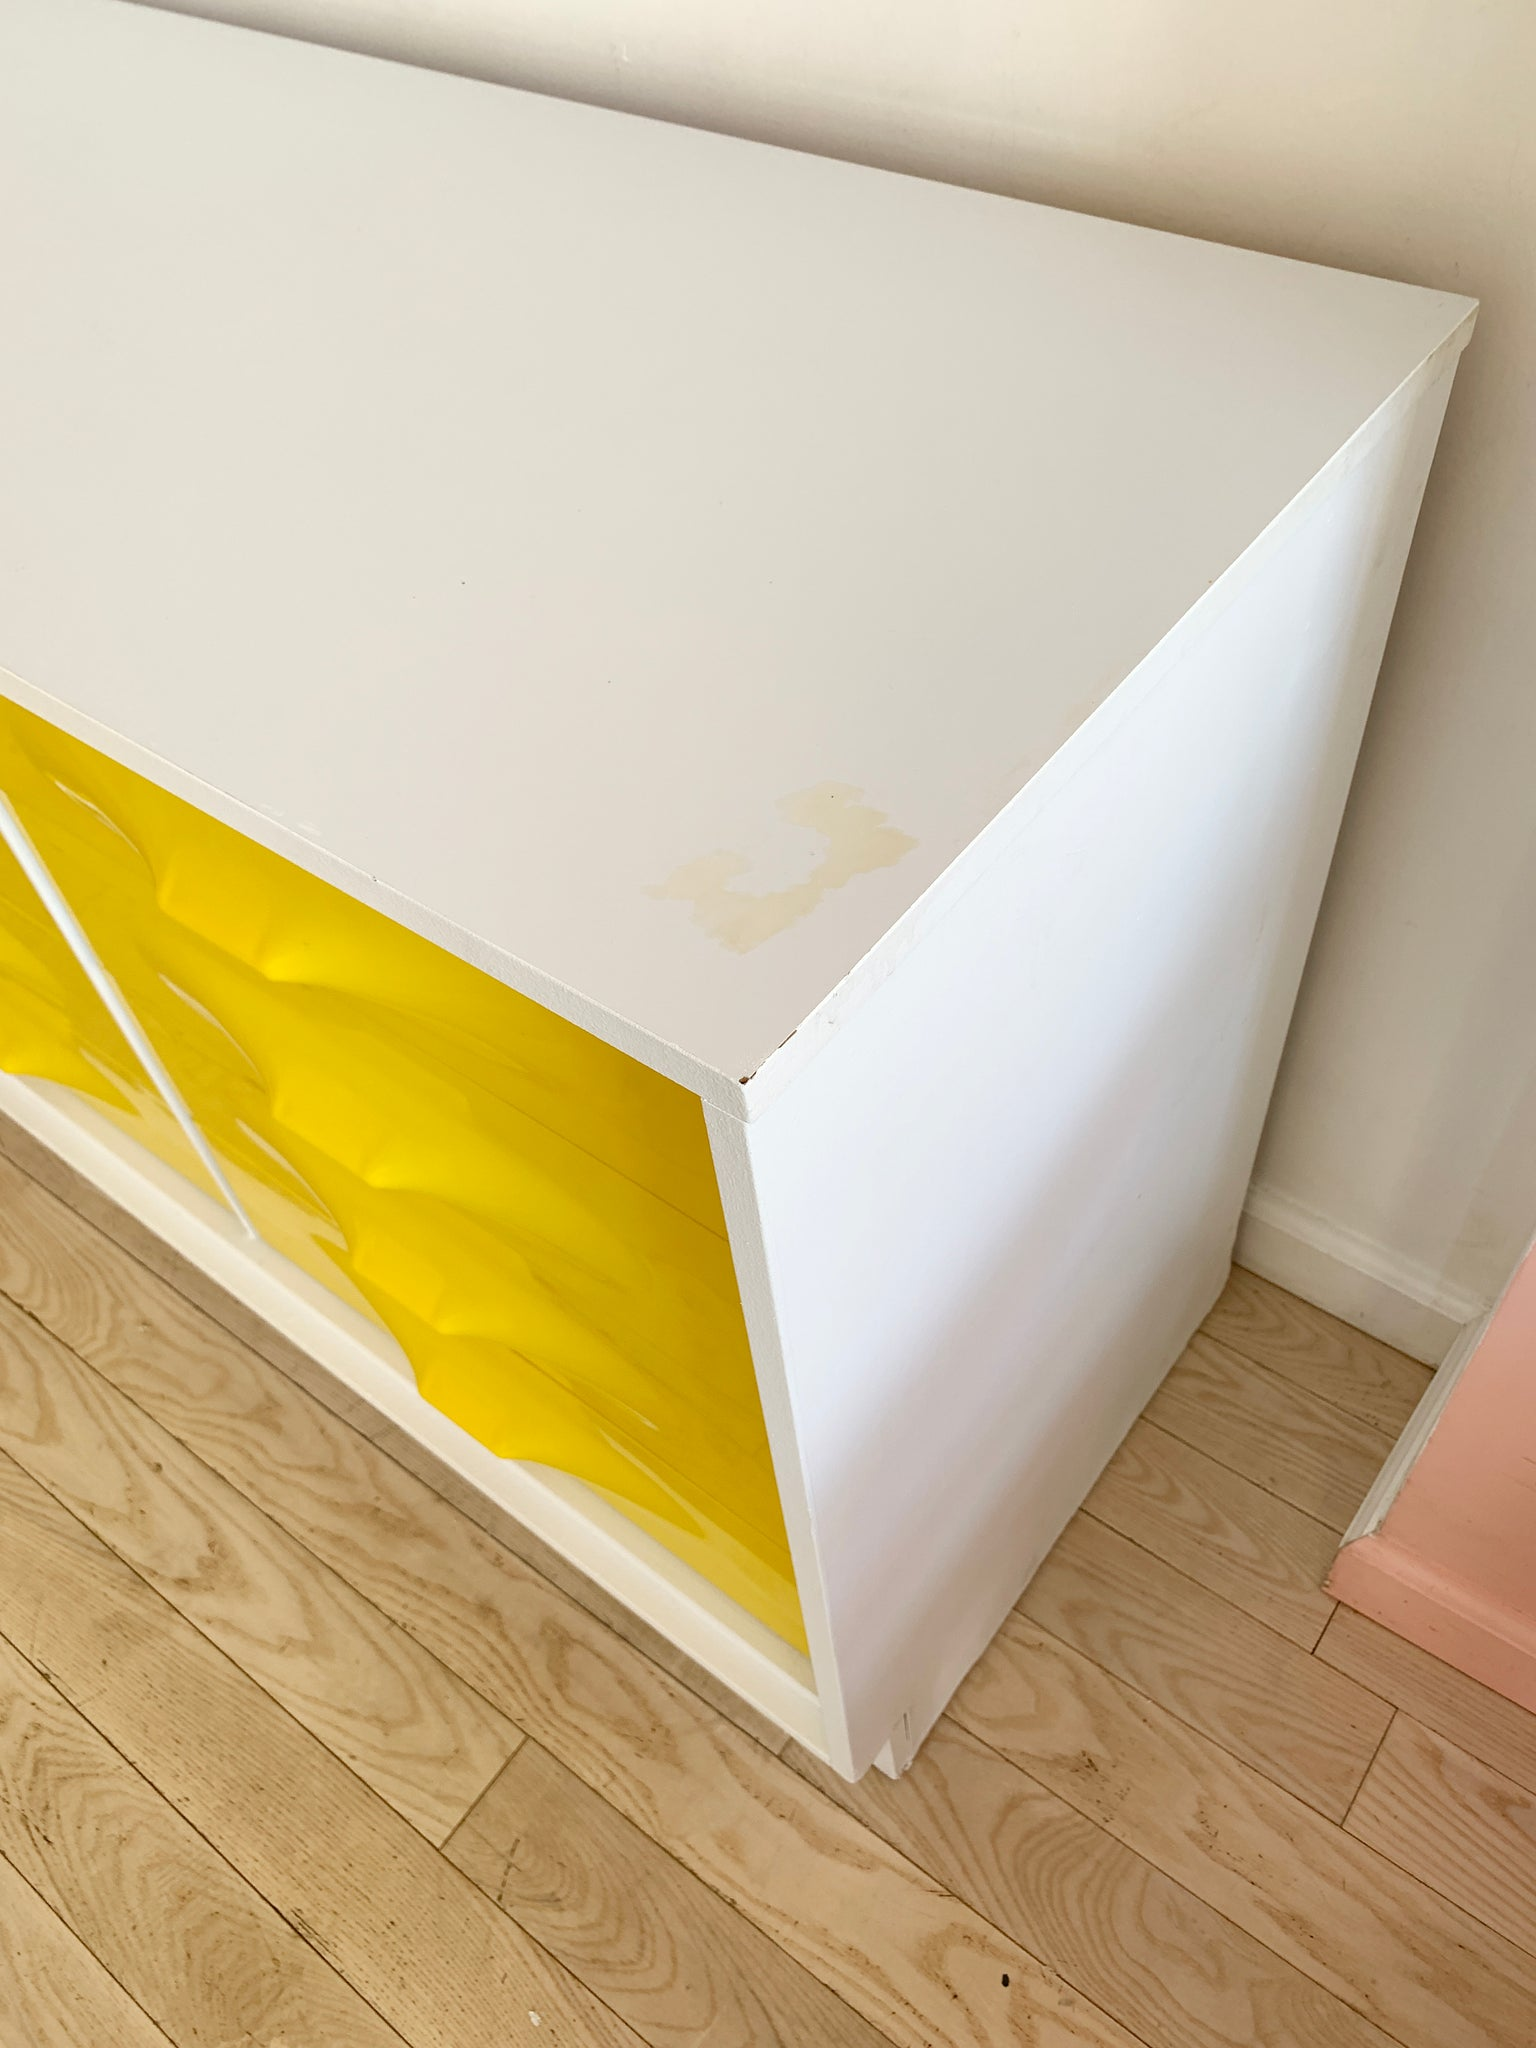 1970s Yellow Plastic Front Credenza by Giovanni Maur for Treco